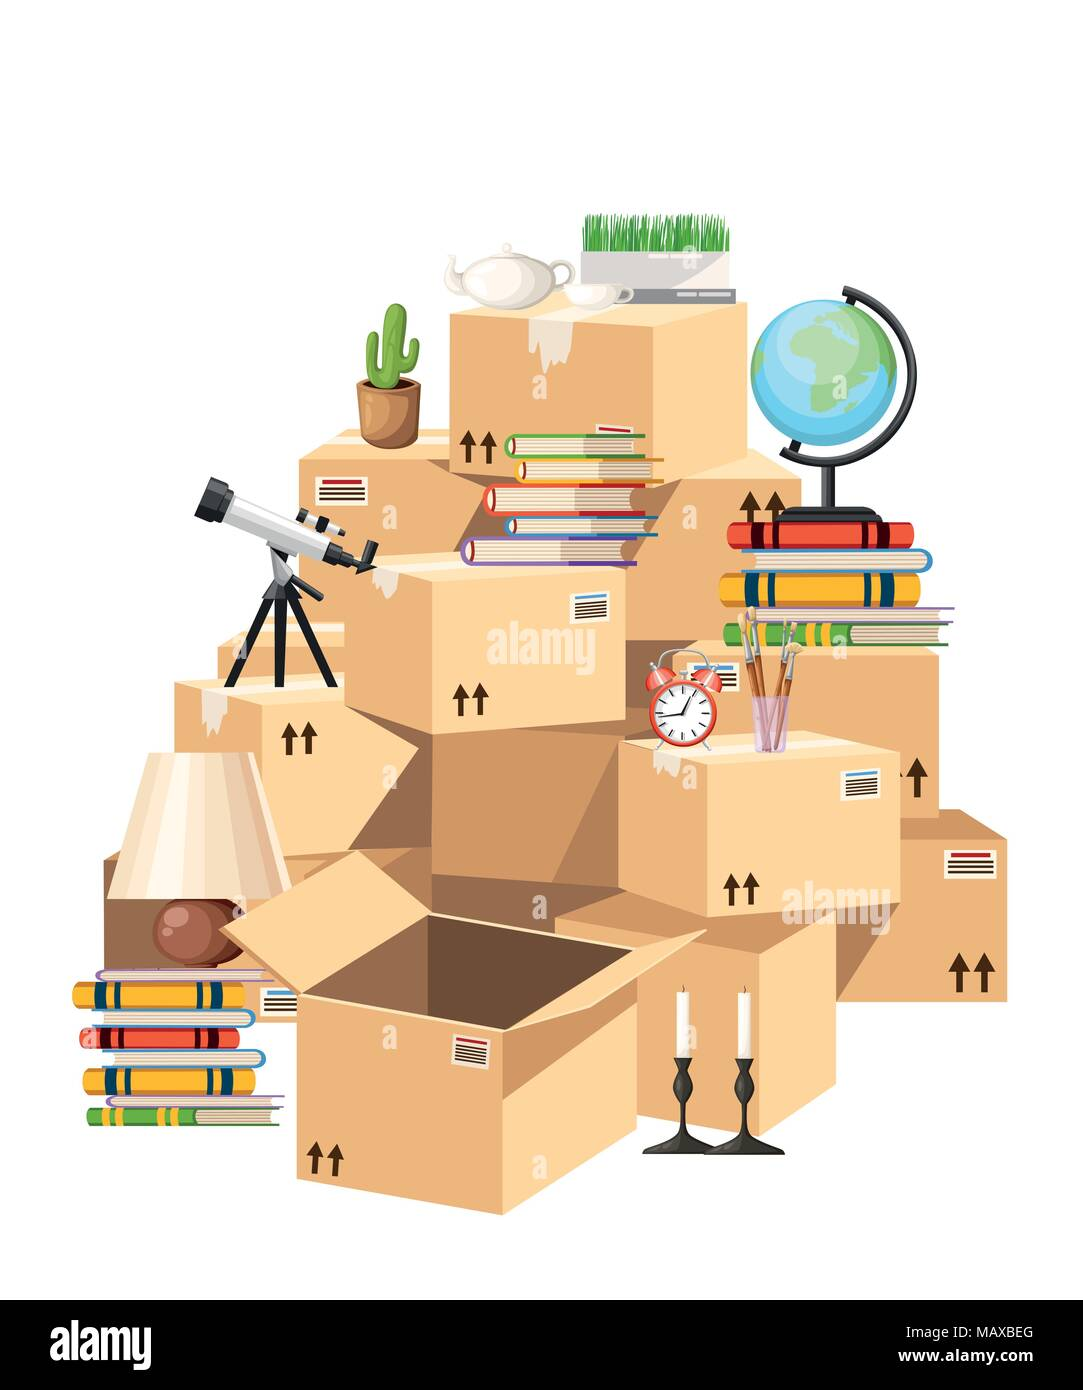 Stack of boxes. Cardboard boxes with objects. Moving house concept. Vector illustration on white background. Web site page and mobile app design. - Stock Vector